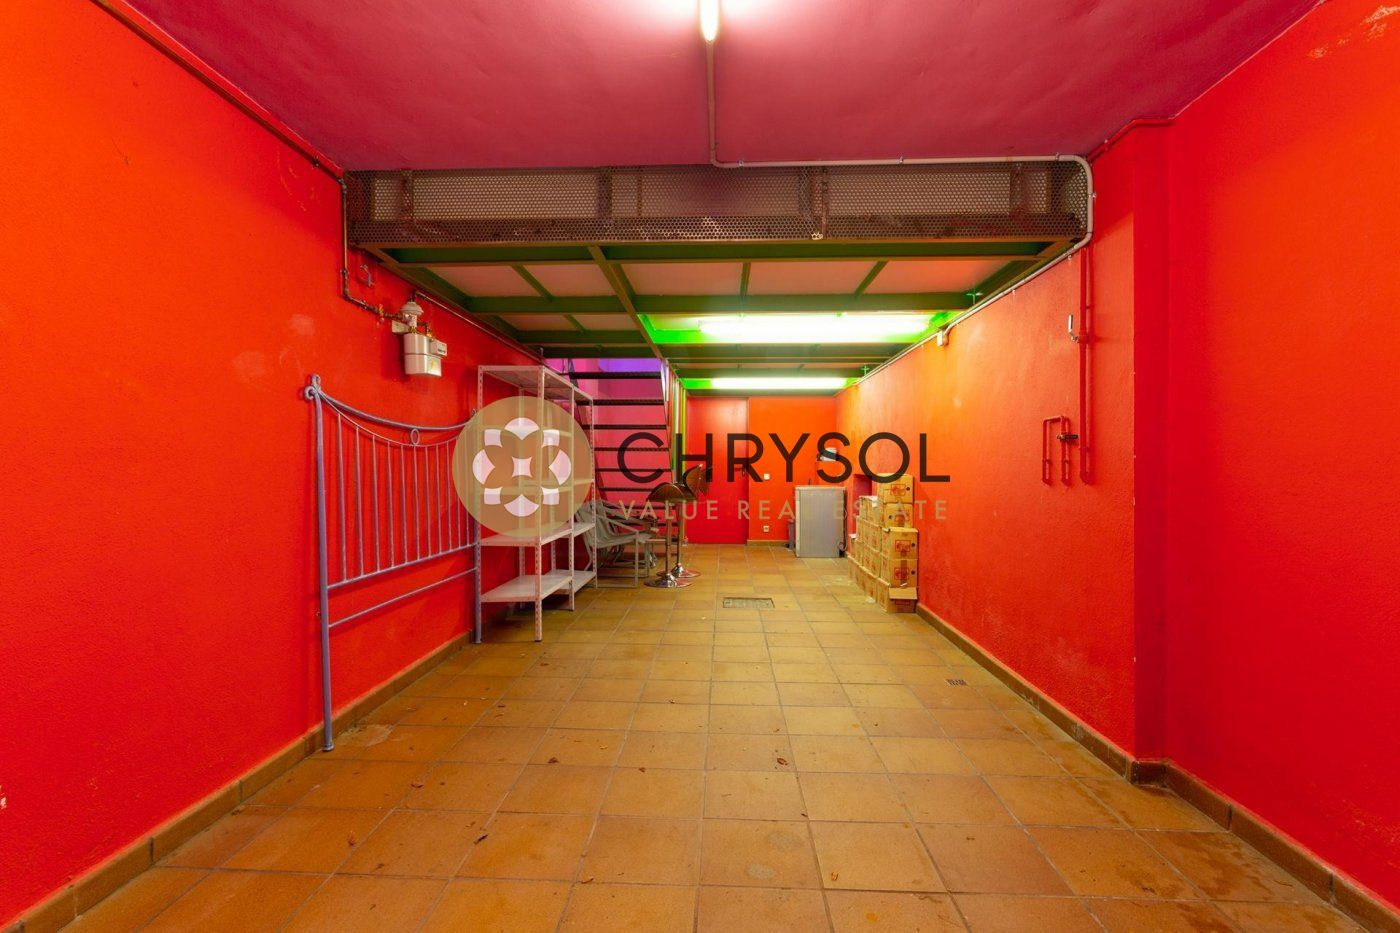 Photogallery - 52 - Chrysol Value